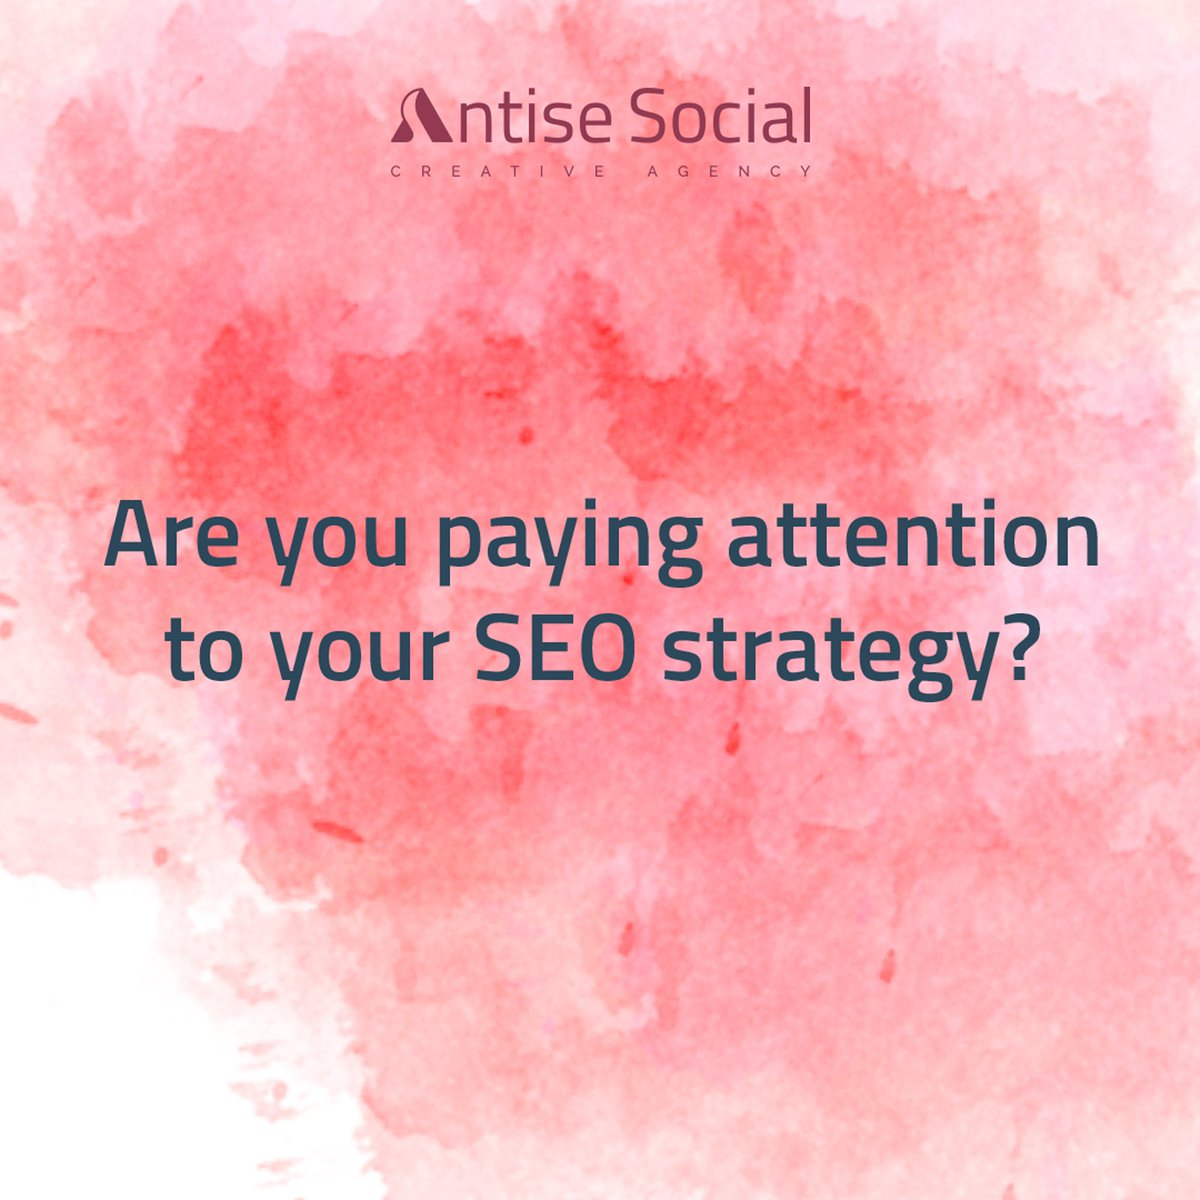 #SEO can get your #targetaudiences attracted to your business. Here's how it helps:  - Rank your website on top - Active conversion - Boosts inbound traffic - Gets you a broader reach - Ensure credibility & trust   #SeoStrategy #DigitalMarketing pic.twitter.com/7JNaPff7T9